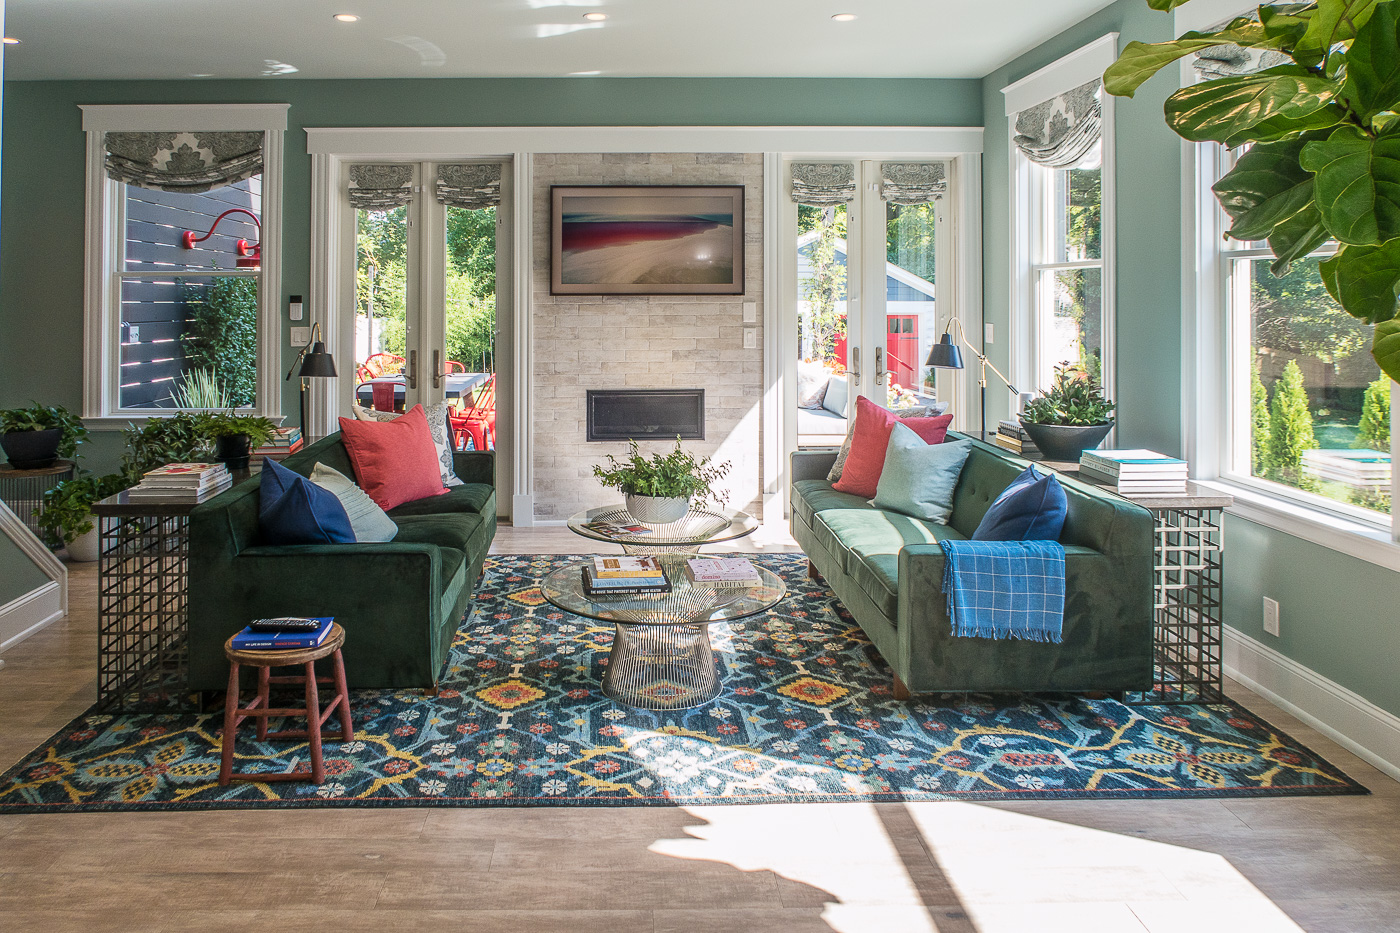 Living Room with Green Couches